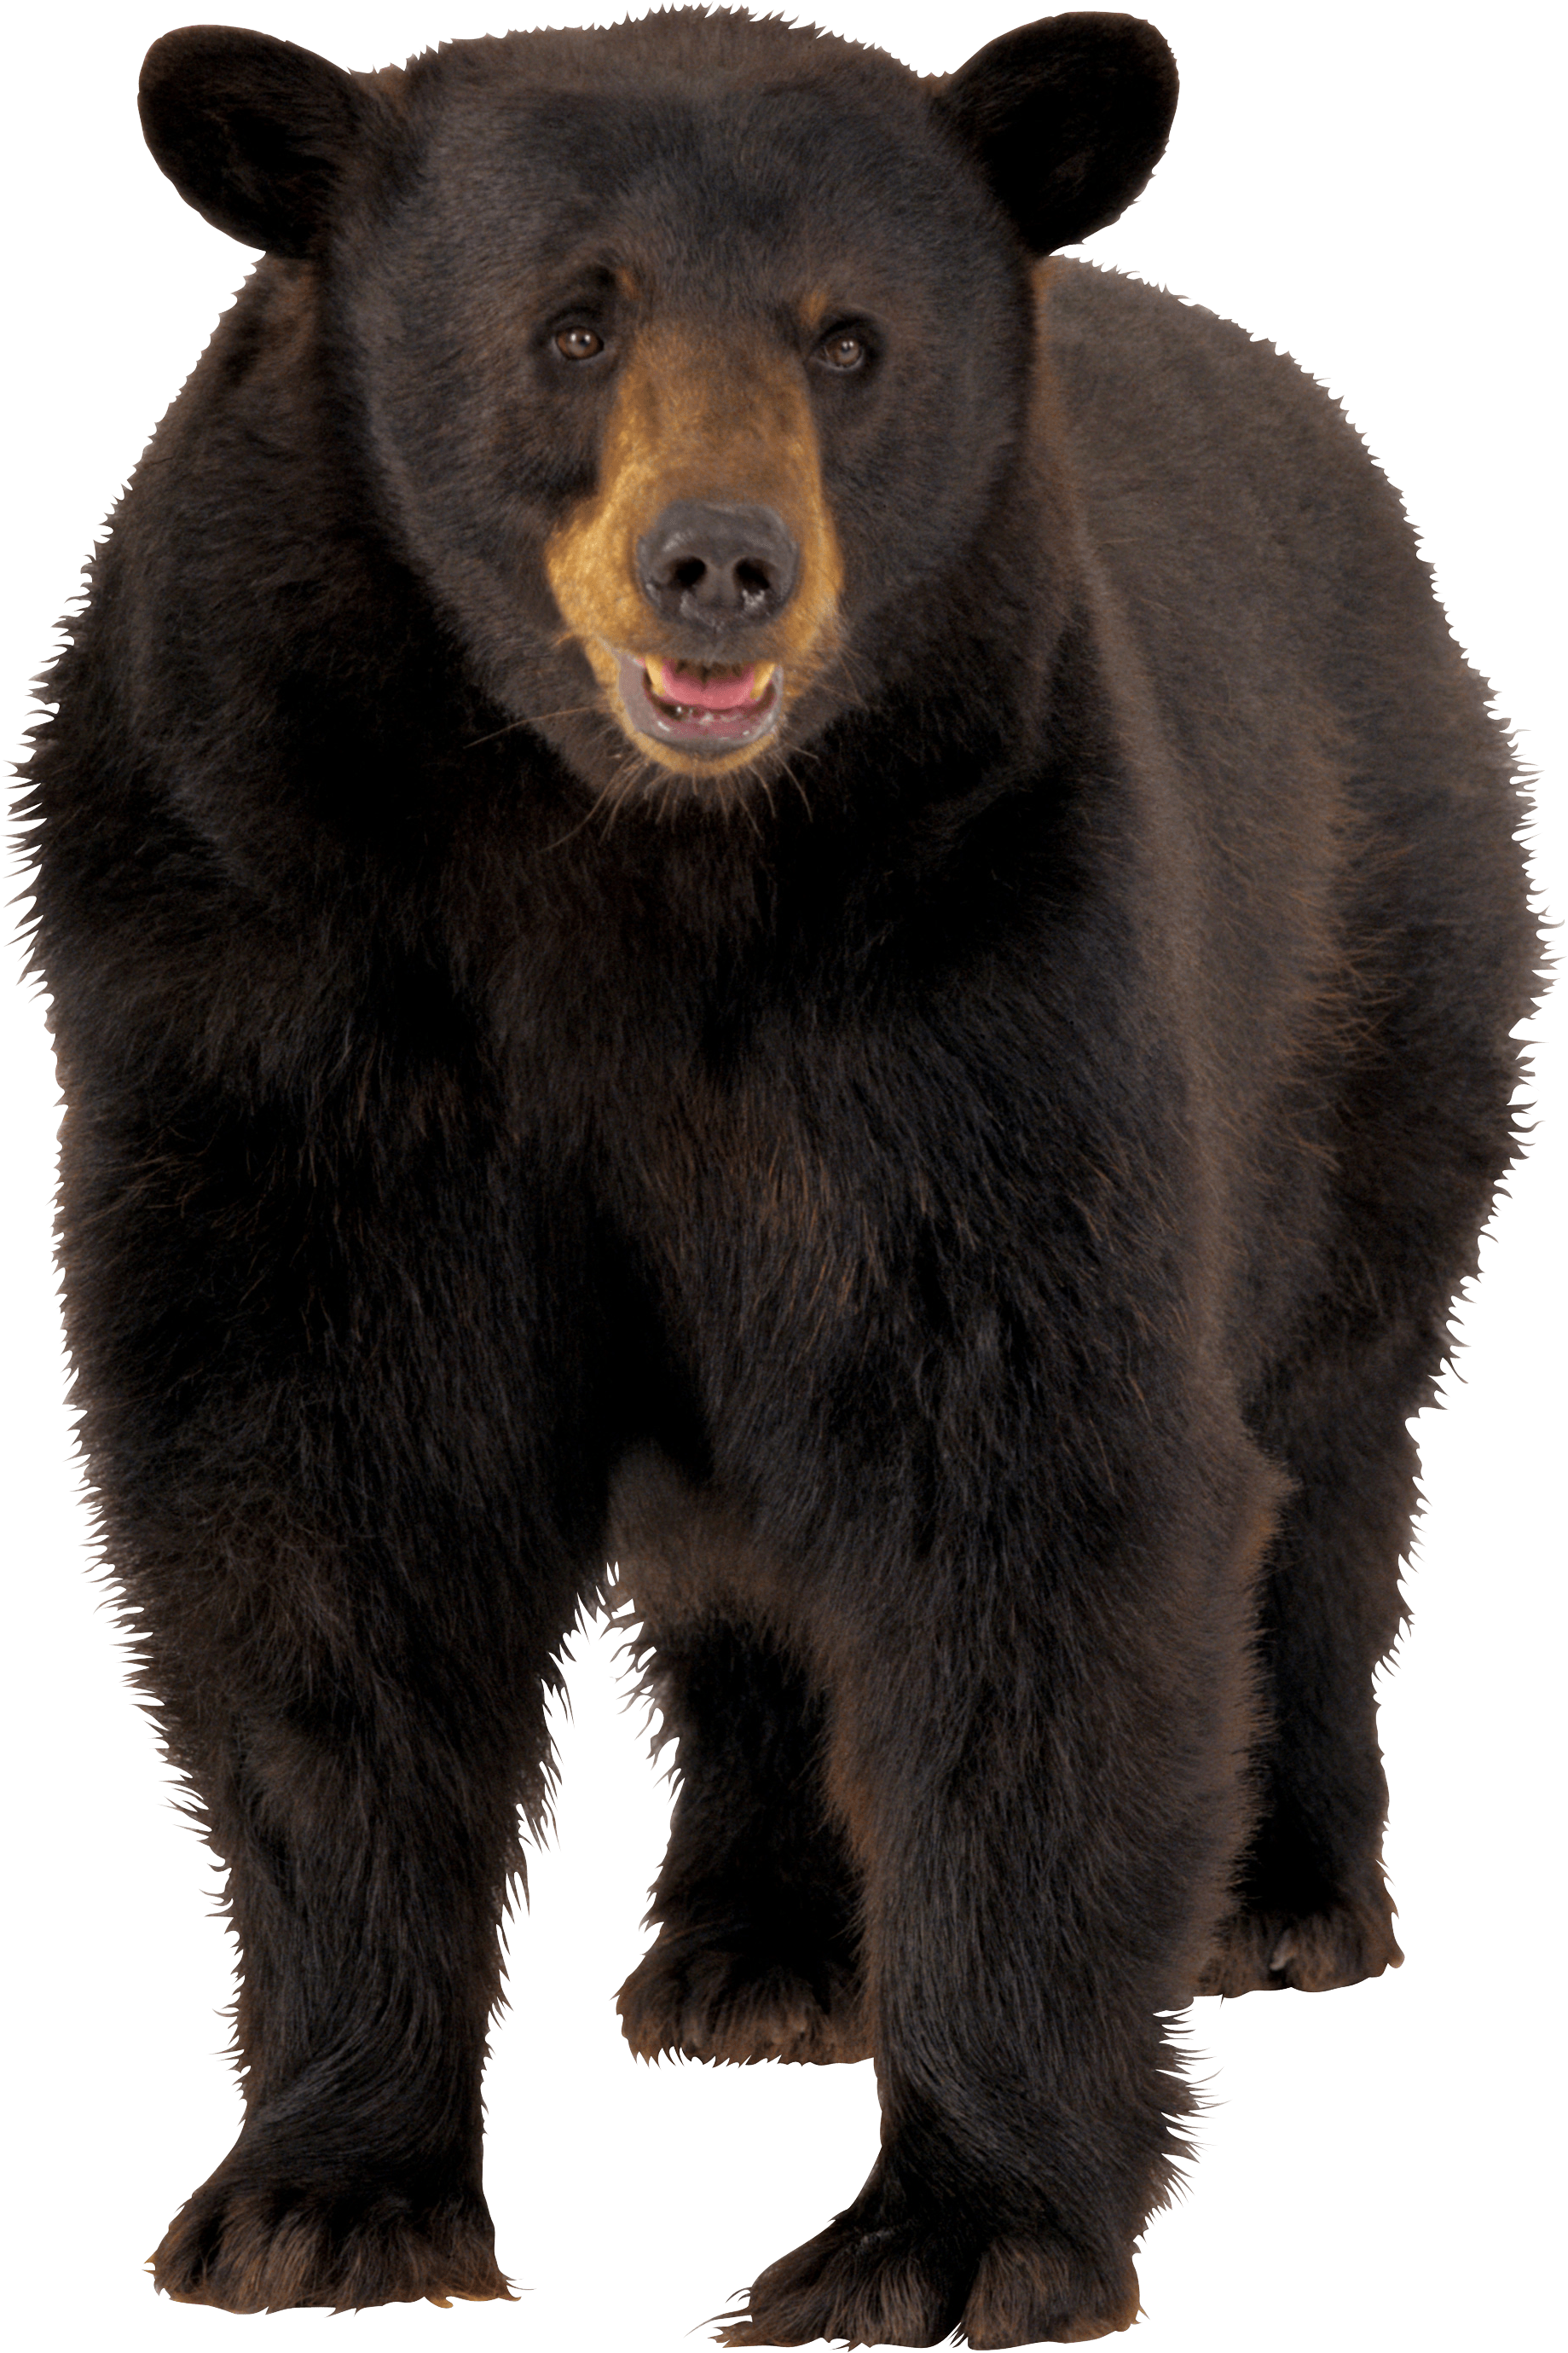 bear transparent background cute bear png black teddy polar bear images free transparent png logos bear transparent background cute bear